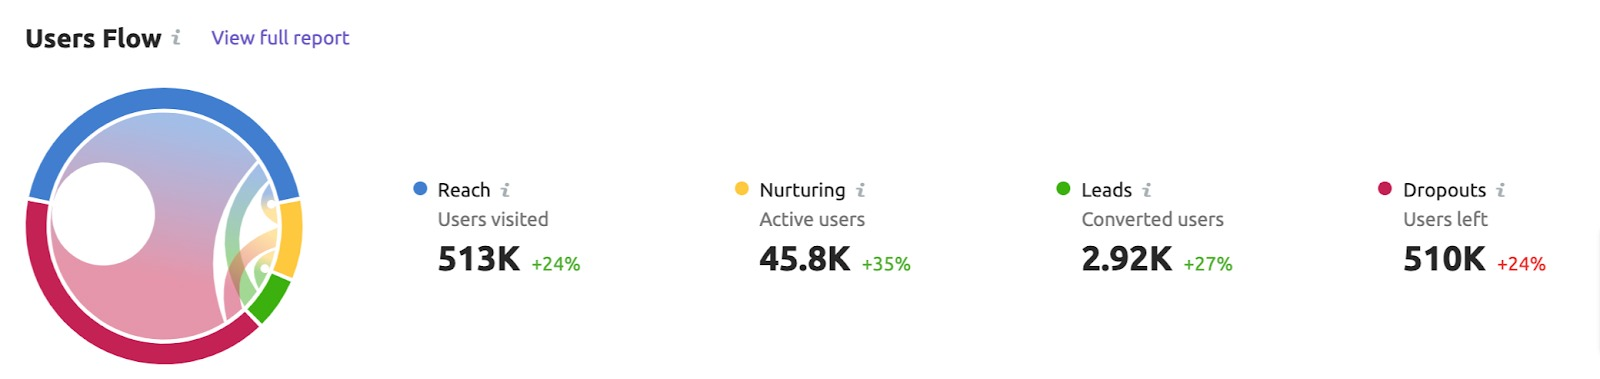 Analyzing and Measuring Content Performance by Funnel Stages image 1